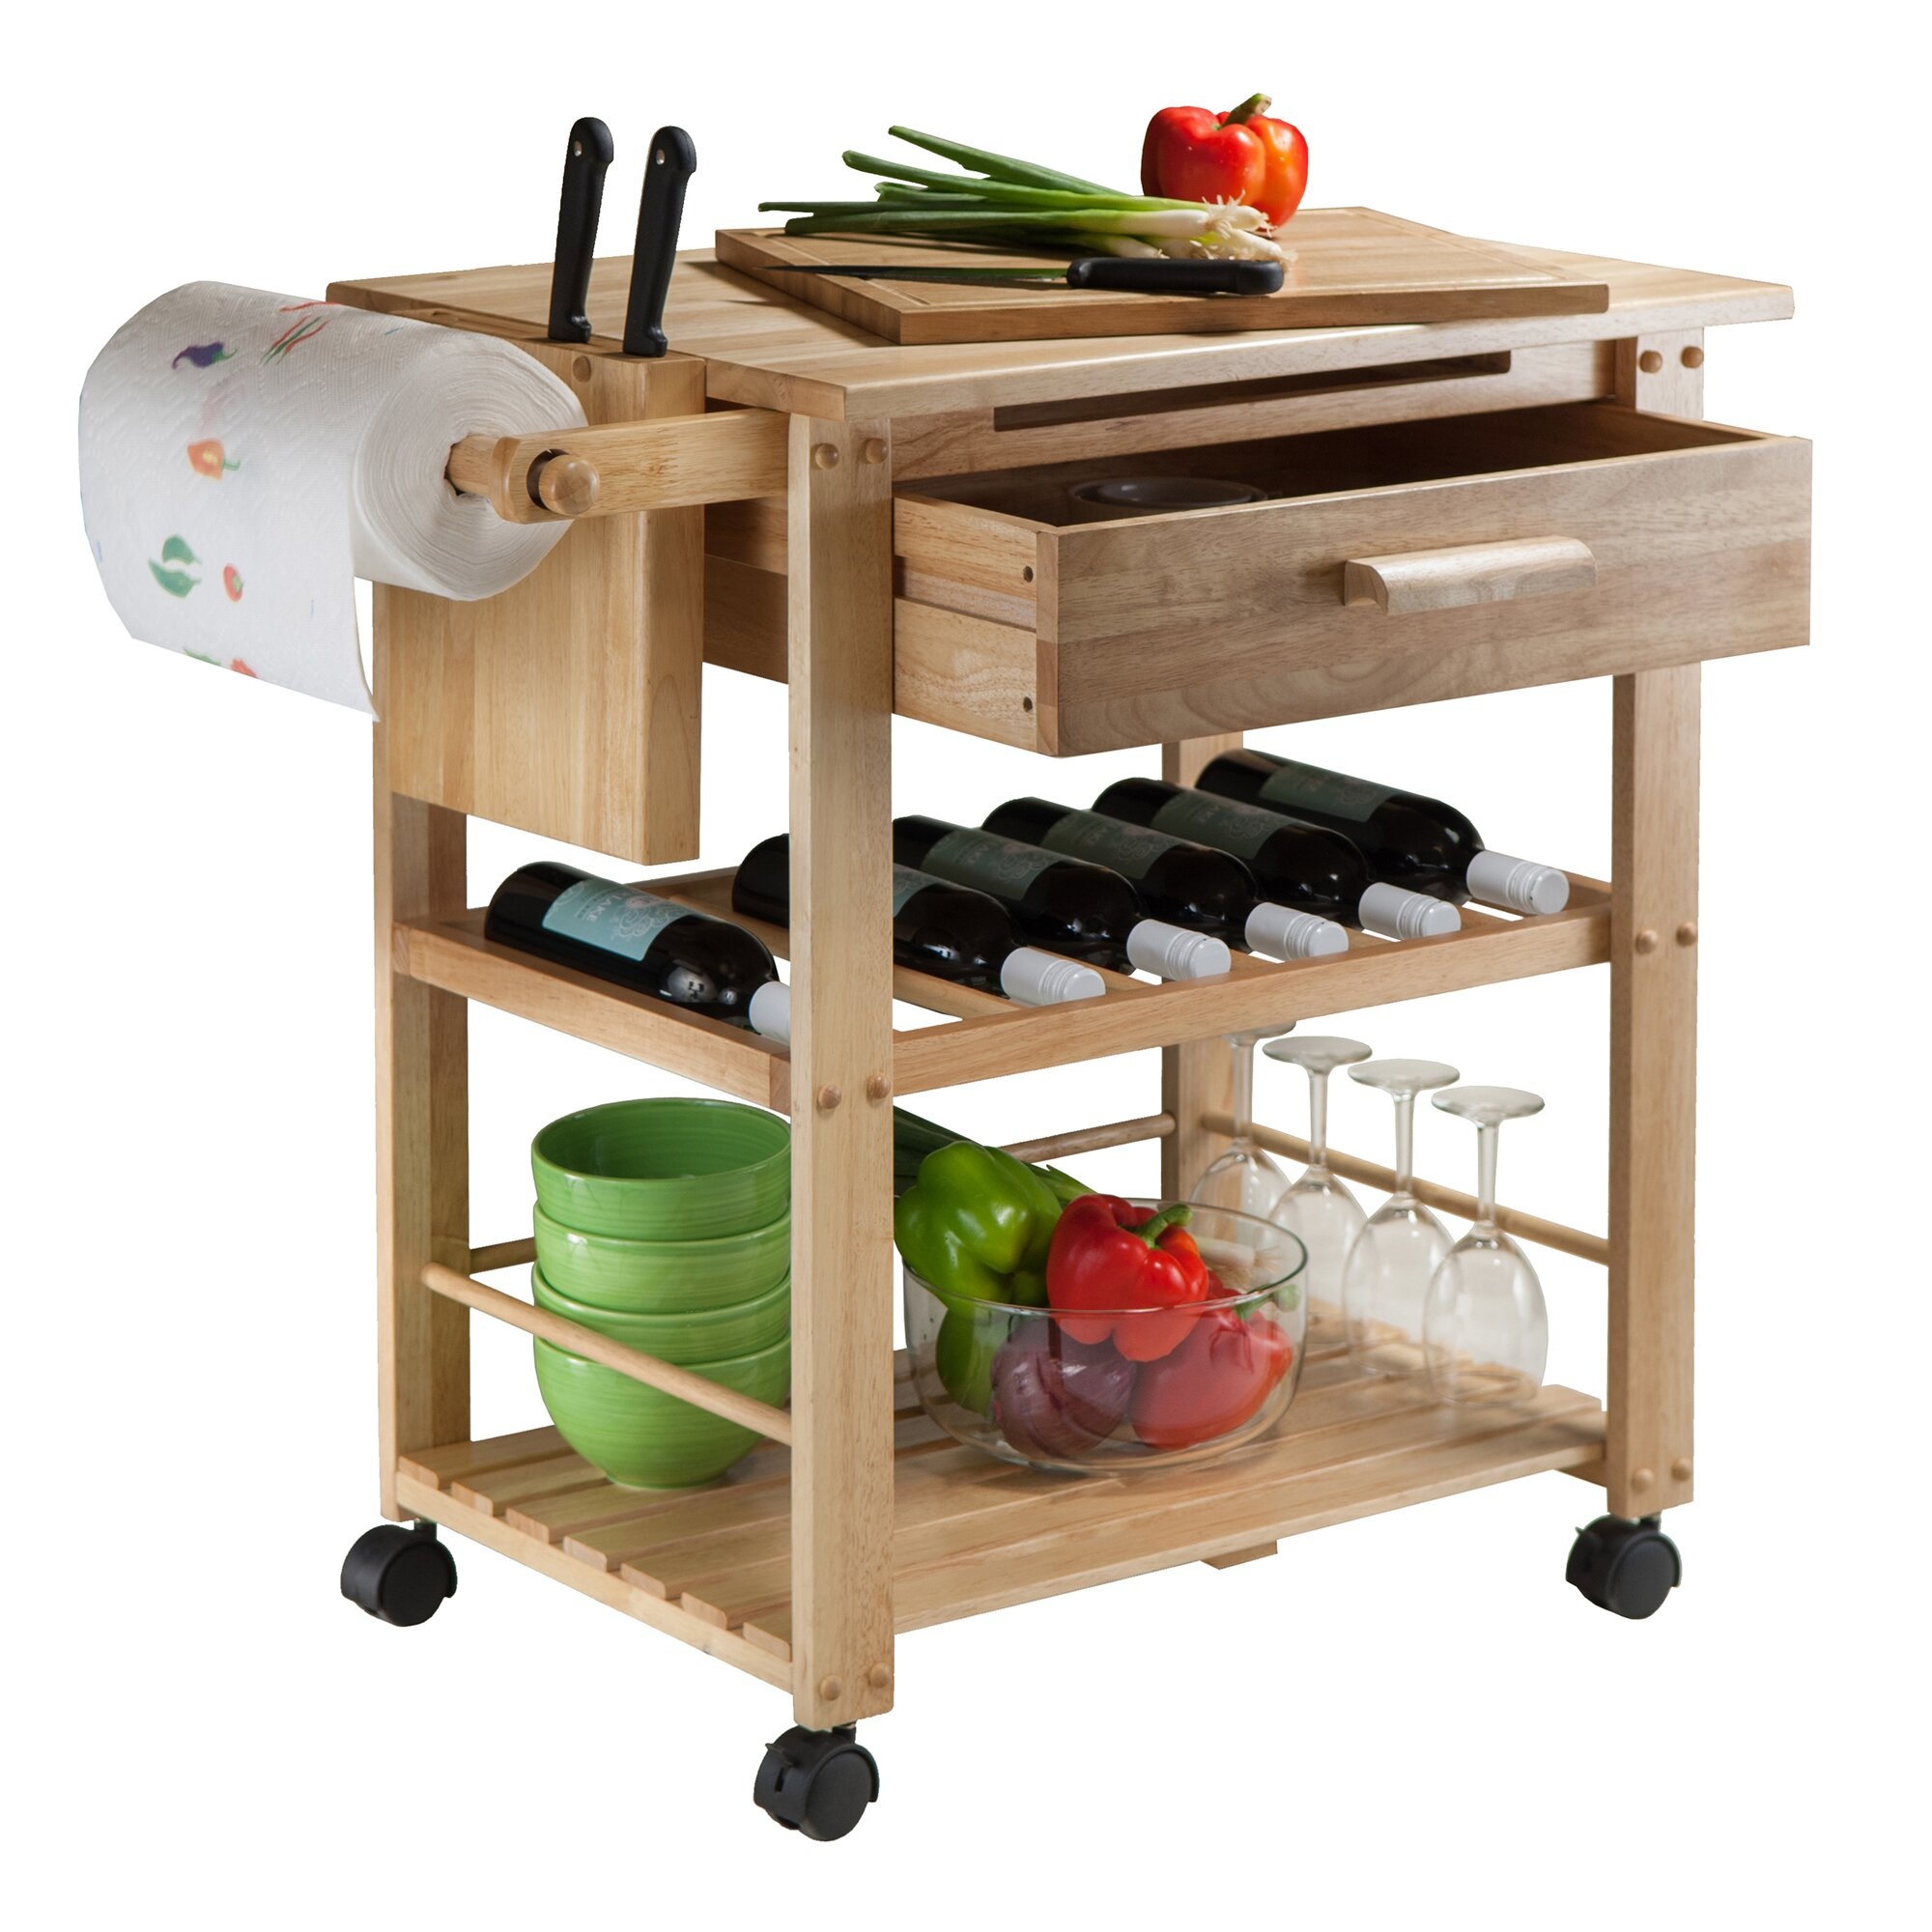 Wooden Kitchen Carts ~ Winsome finland kitchen cart with wooden top reviews